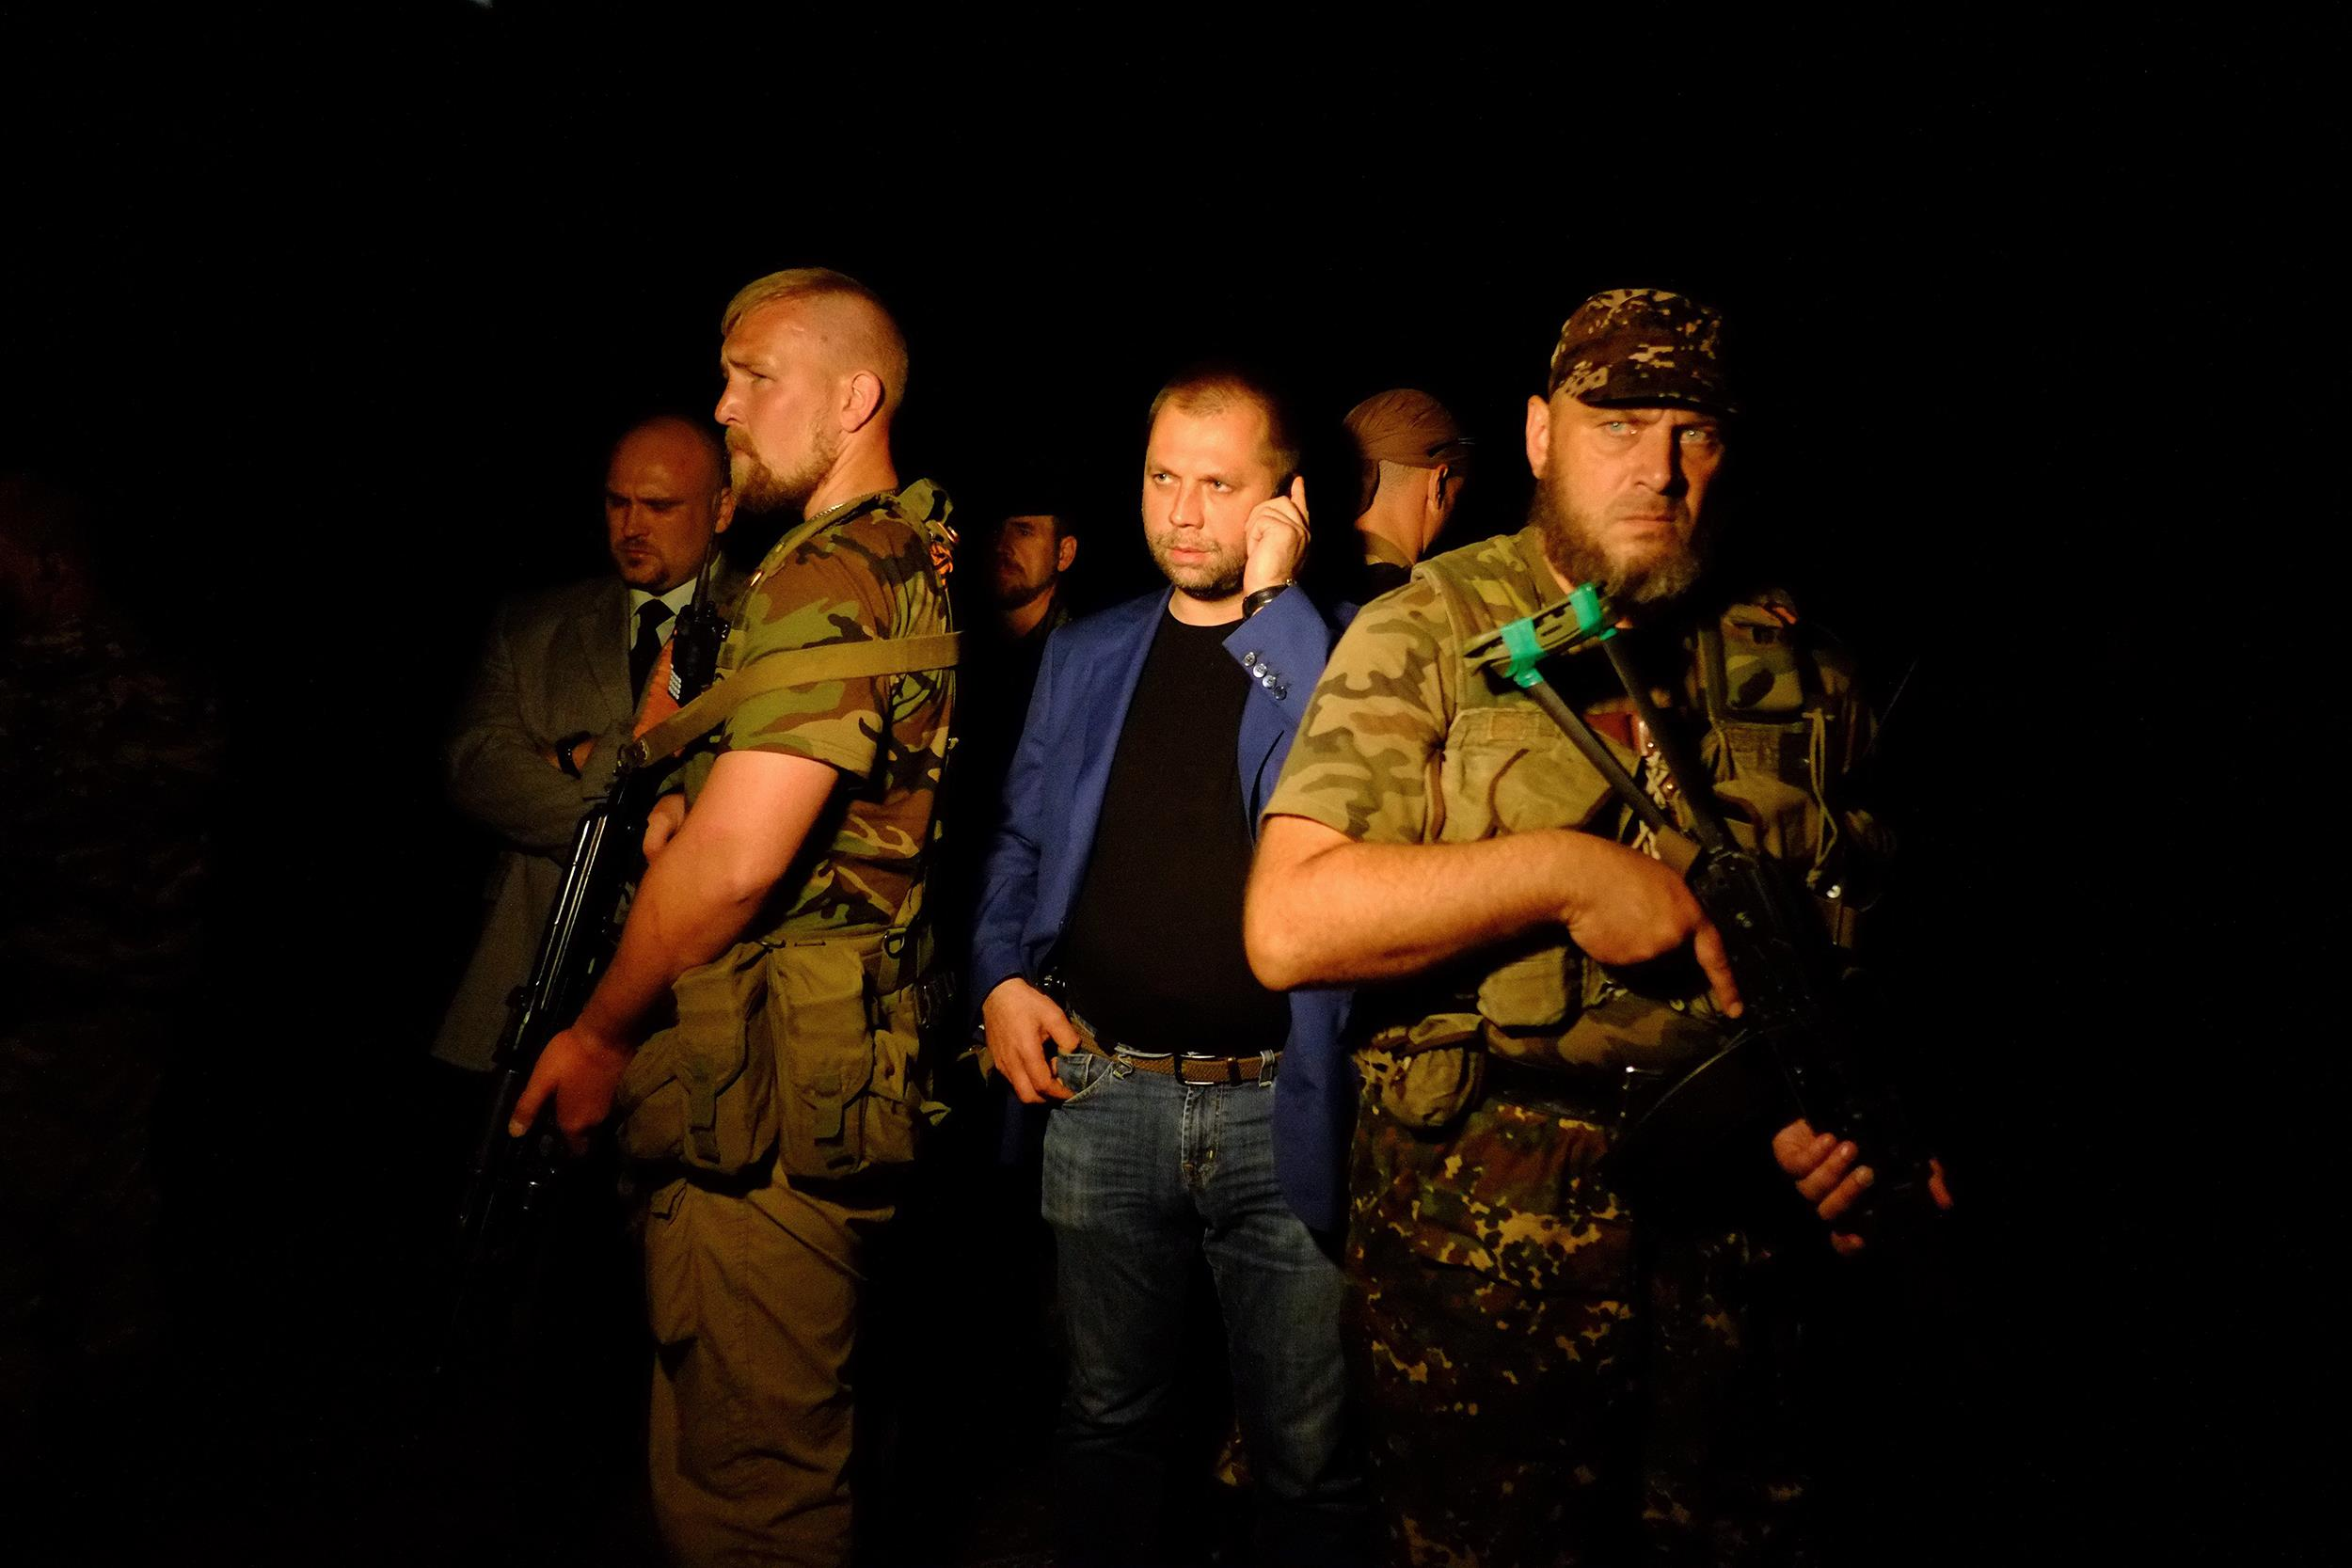 Image: Self-proclaimed Prime Minister of the pro-Russian separatist 'Donetsk People's Republic' Alexander Borodai, center, stands as he arrives on the site of the crash of a Malaysian airliner carrying 298 people from Amsterdam to Kuala Lumpur